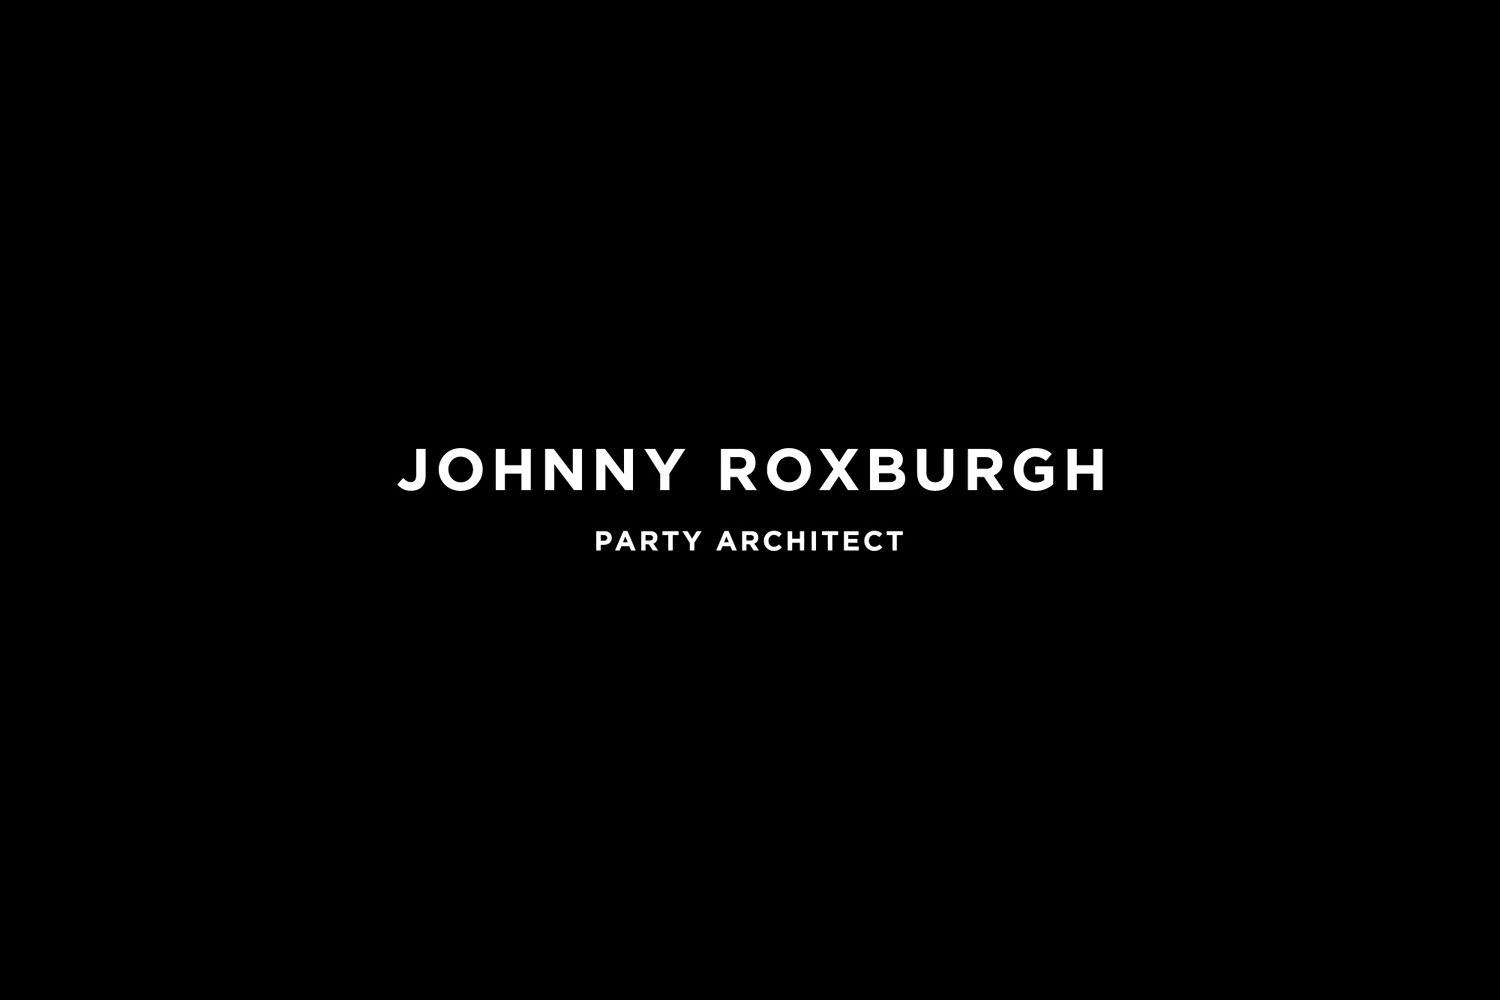 Logotype for UK party architect Johnny Roxburgh by graphic design studio Bunch